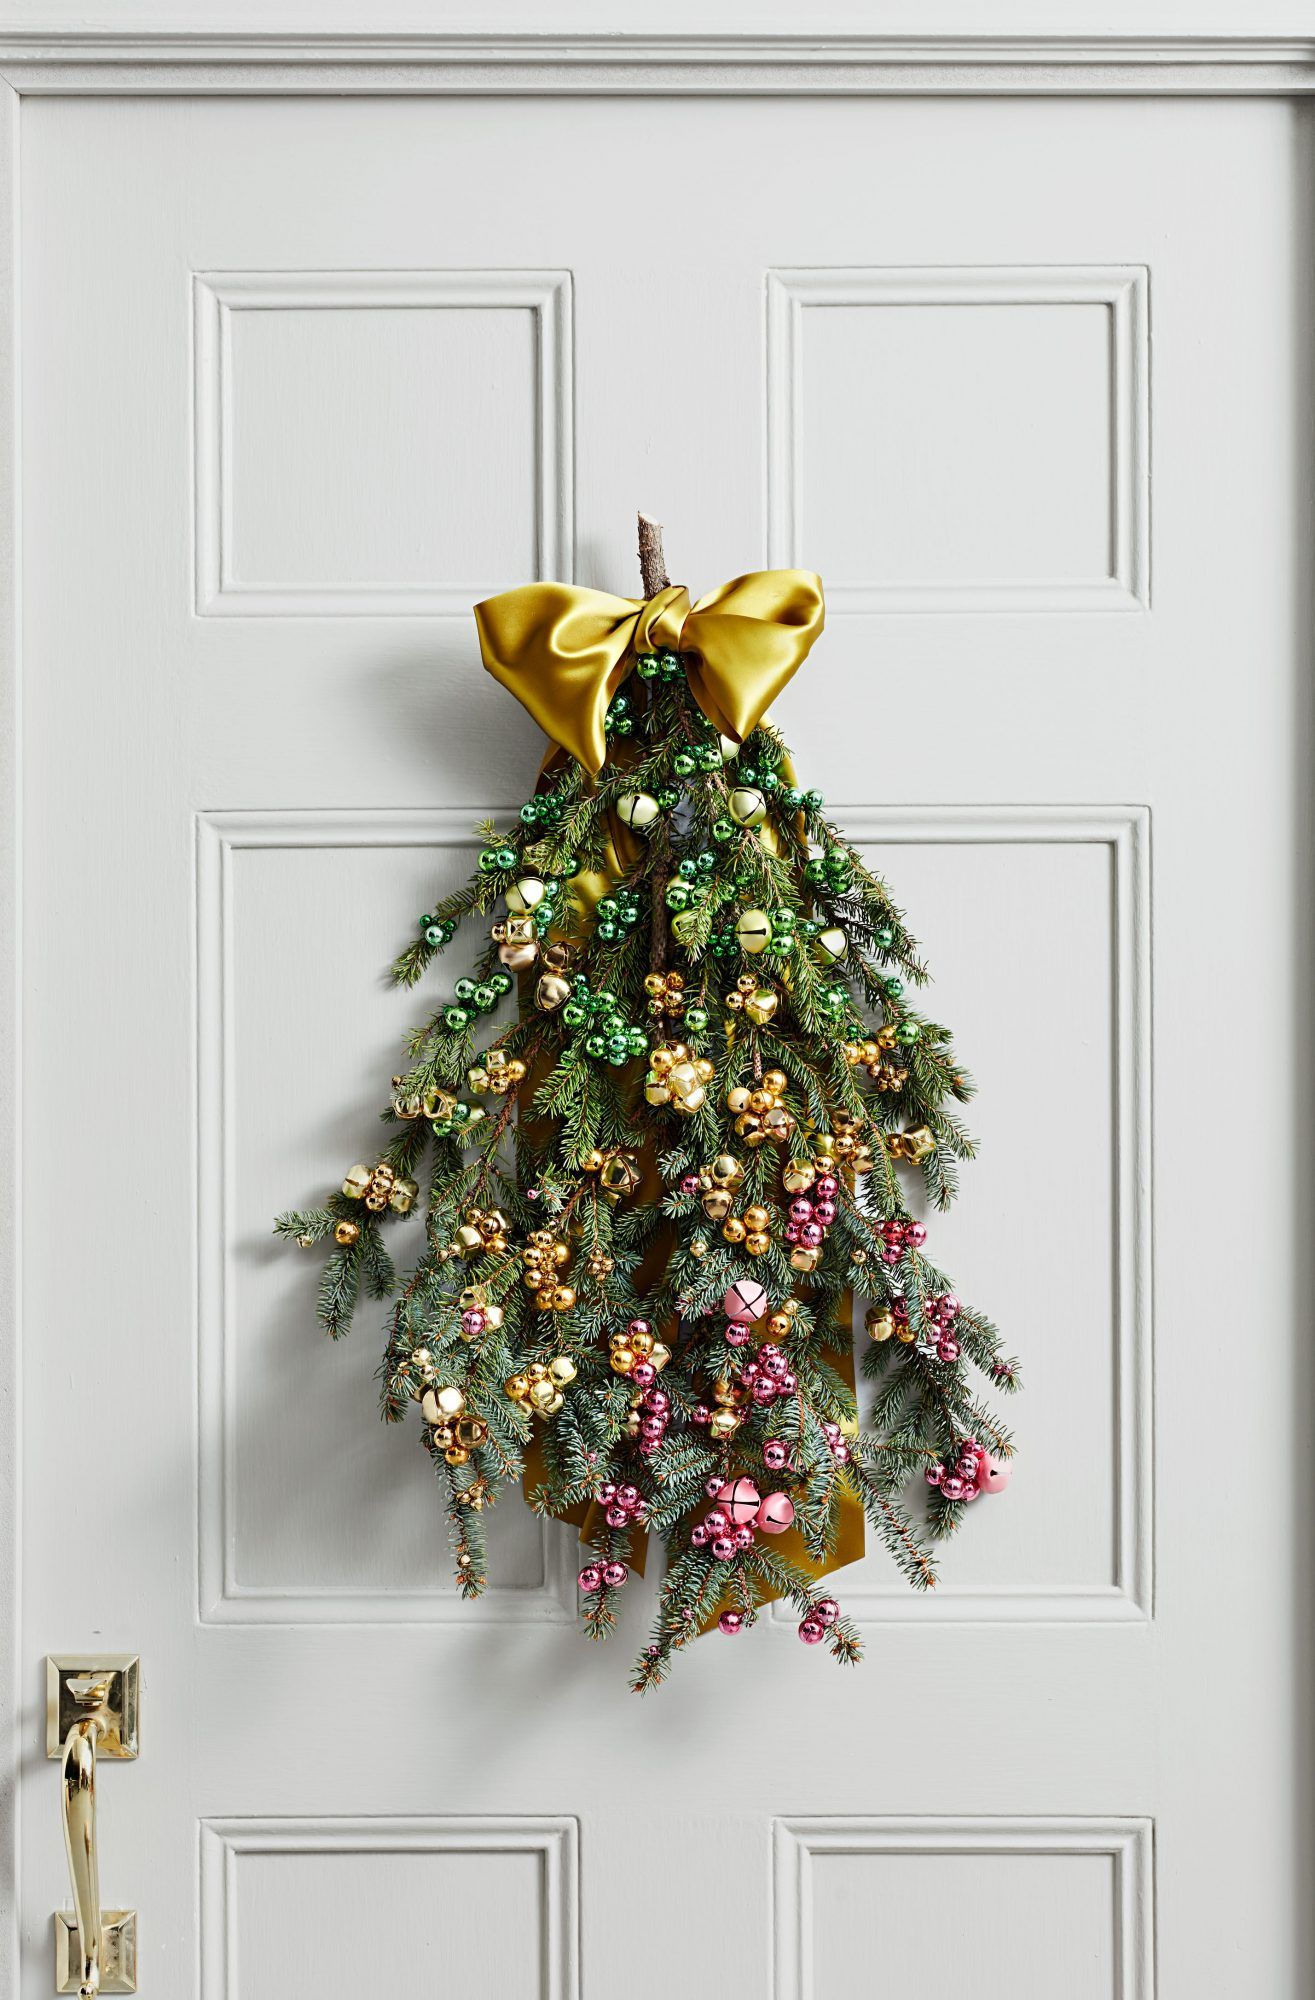 12 Outdoor Christmas Decorations To Make Your Home Festive And Bright Outdoor Christmas Christmas Decorations Christmas Decorations To Make